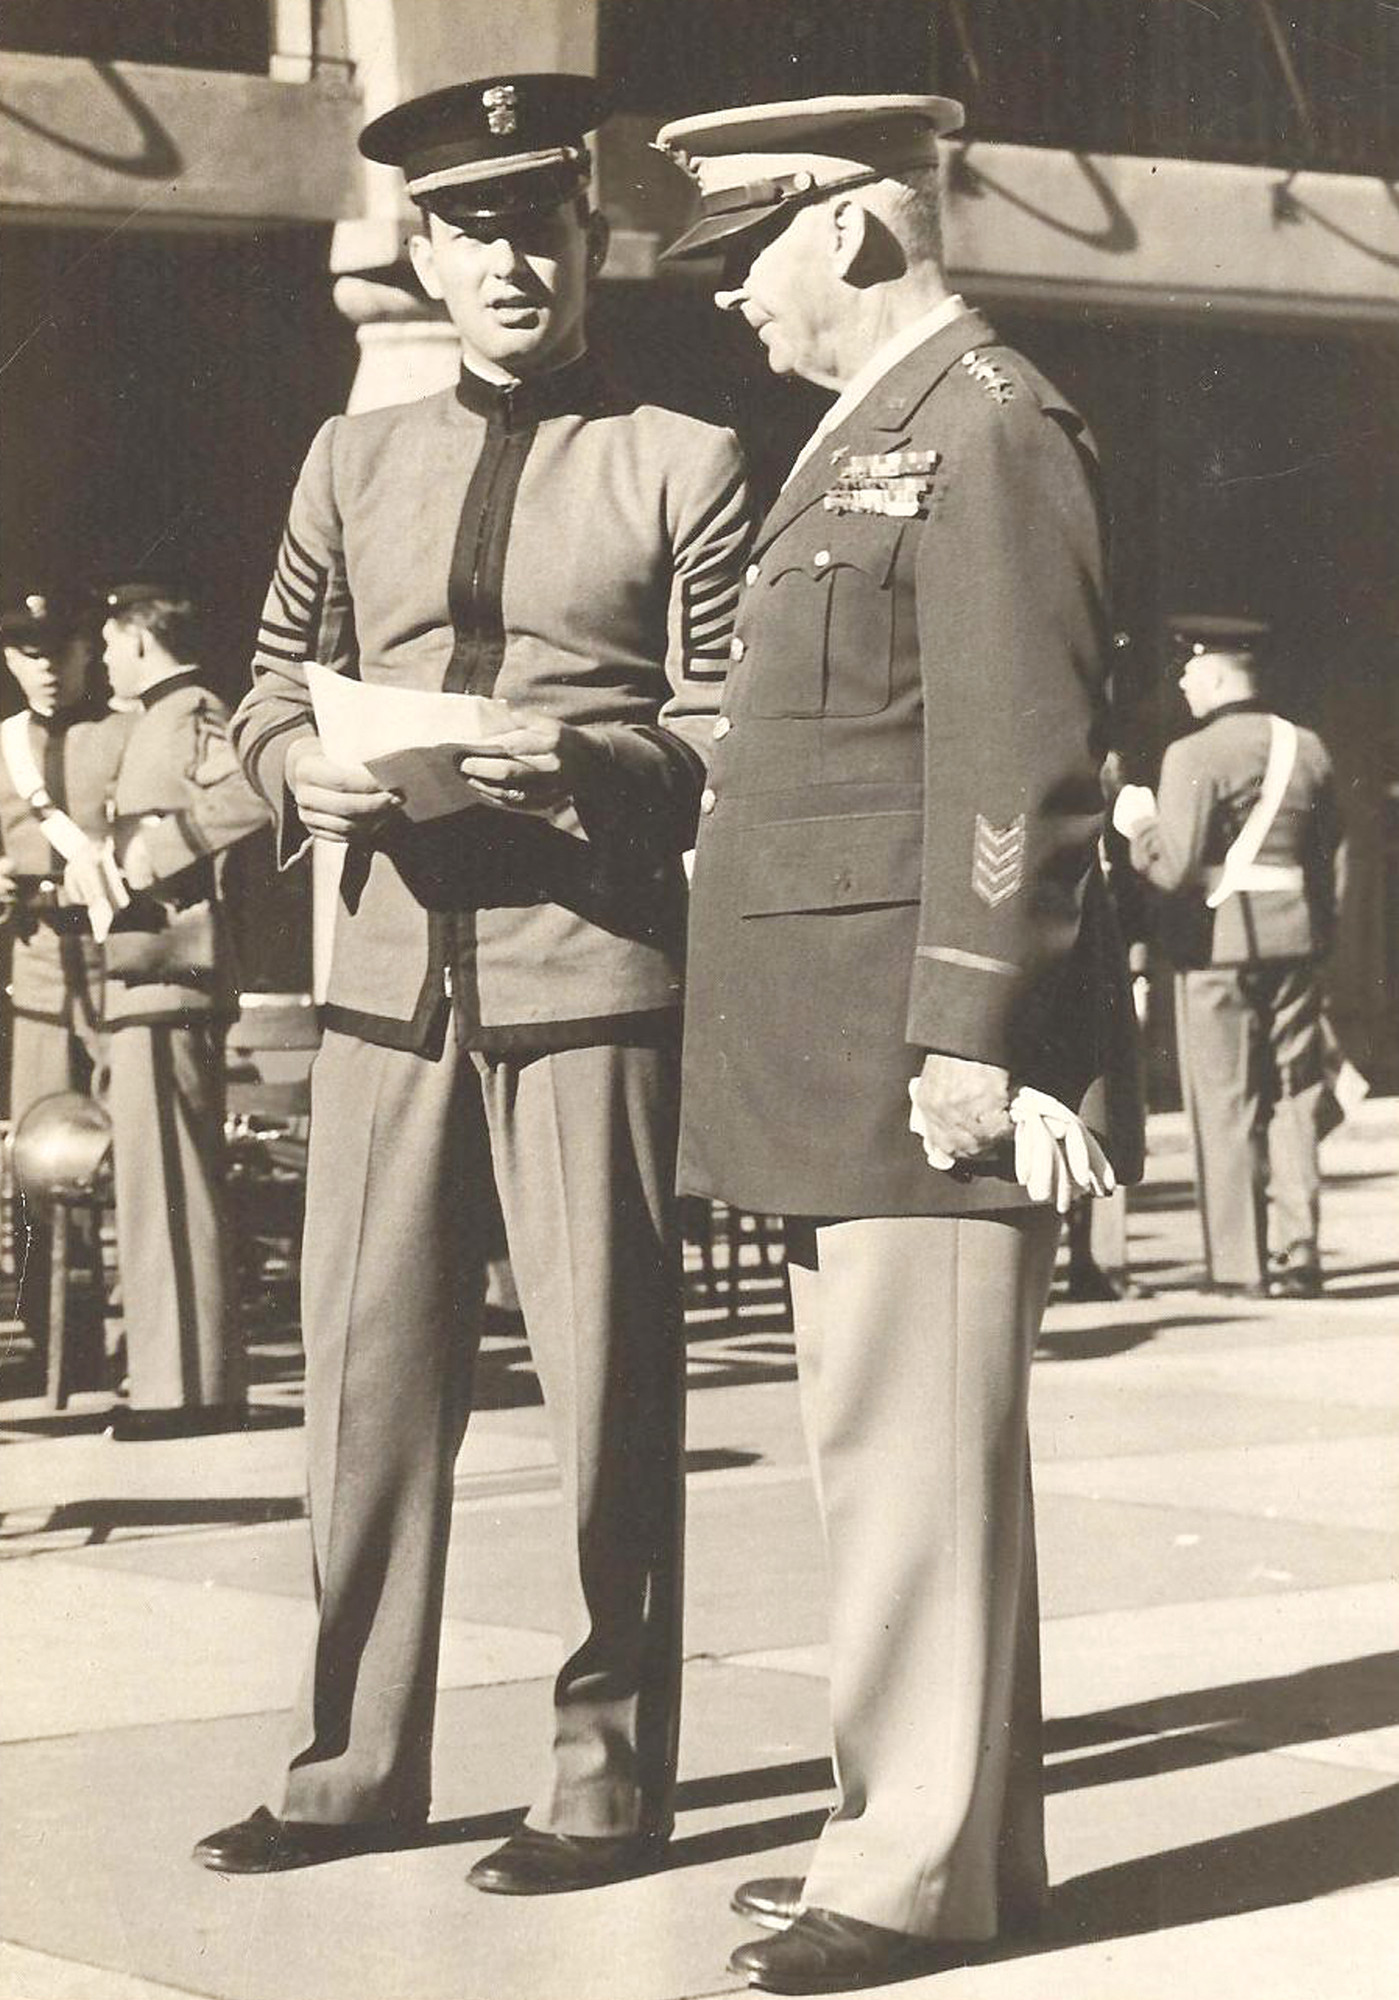 Bubba McElveen, at left, entered the Air Force after graduating from The Citadel and then served in the Korean conflict.